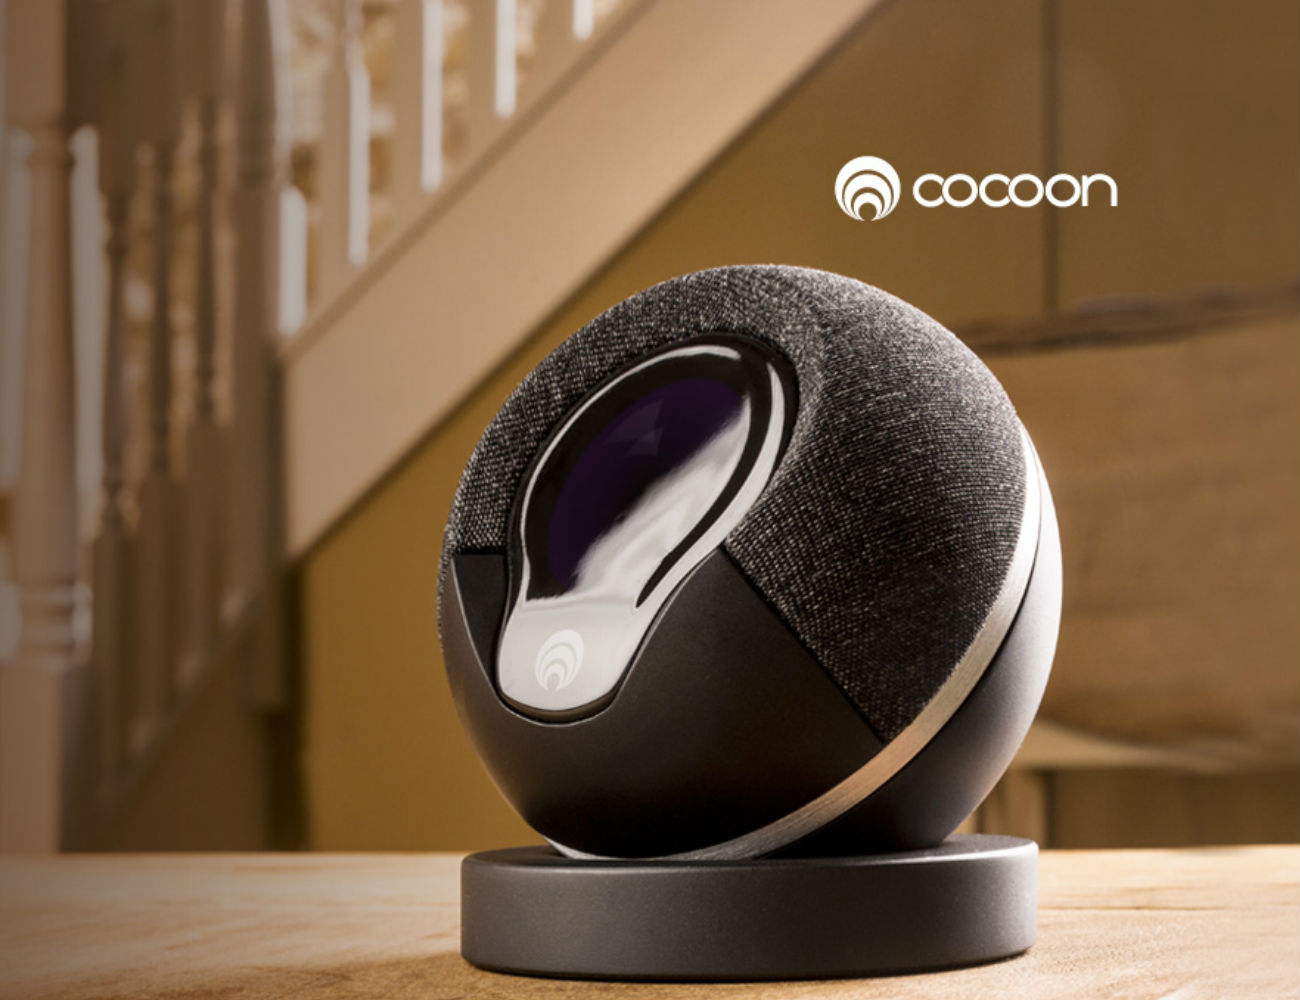 Cocoon – Smart Home Security